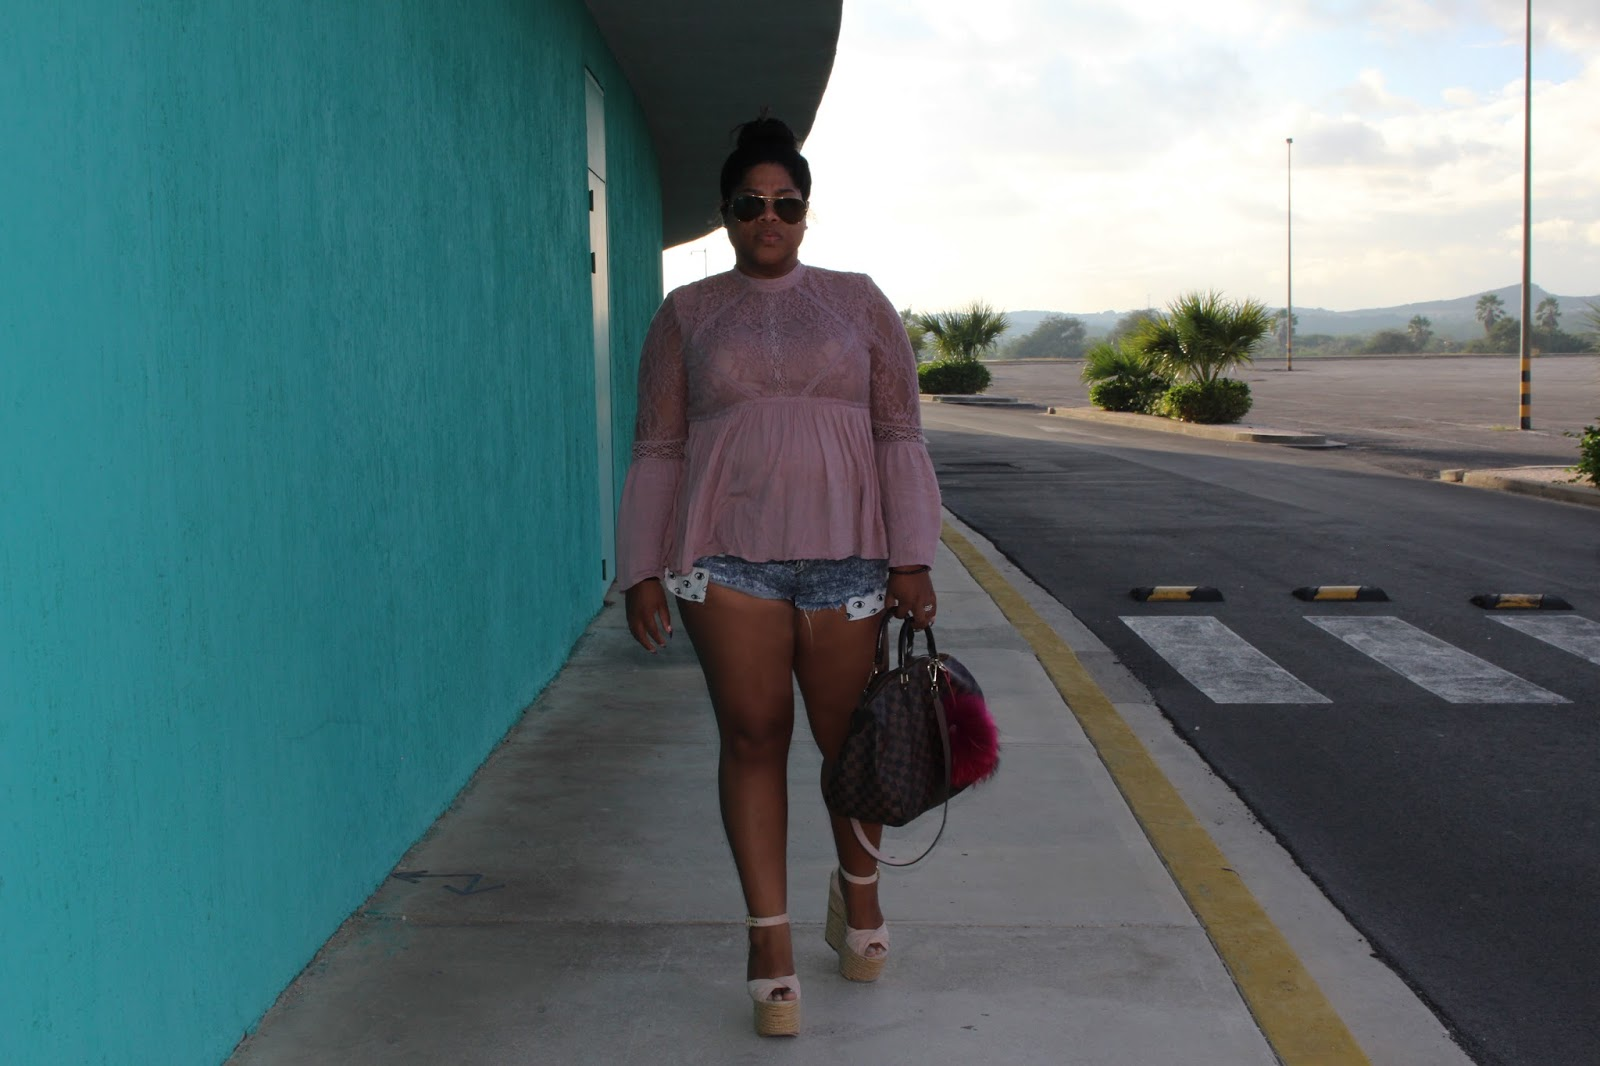 louis vuitton, shopping, luxury, blogger, fashion, curacao, american eagle, topshop, wedges, style, curvy